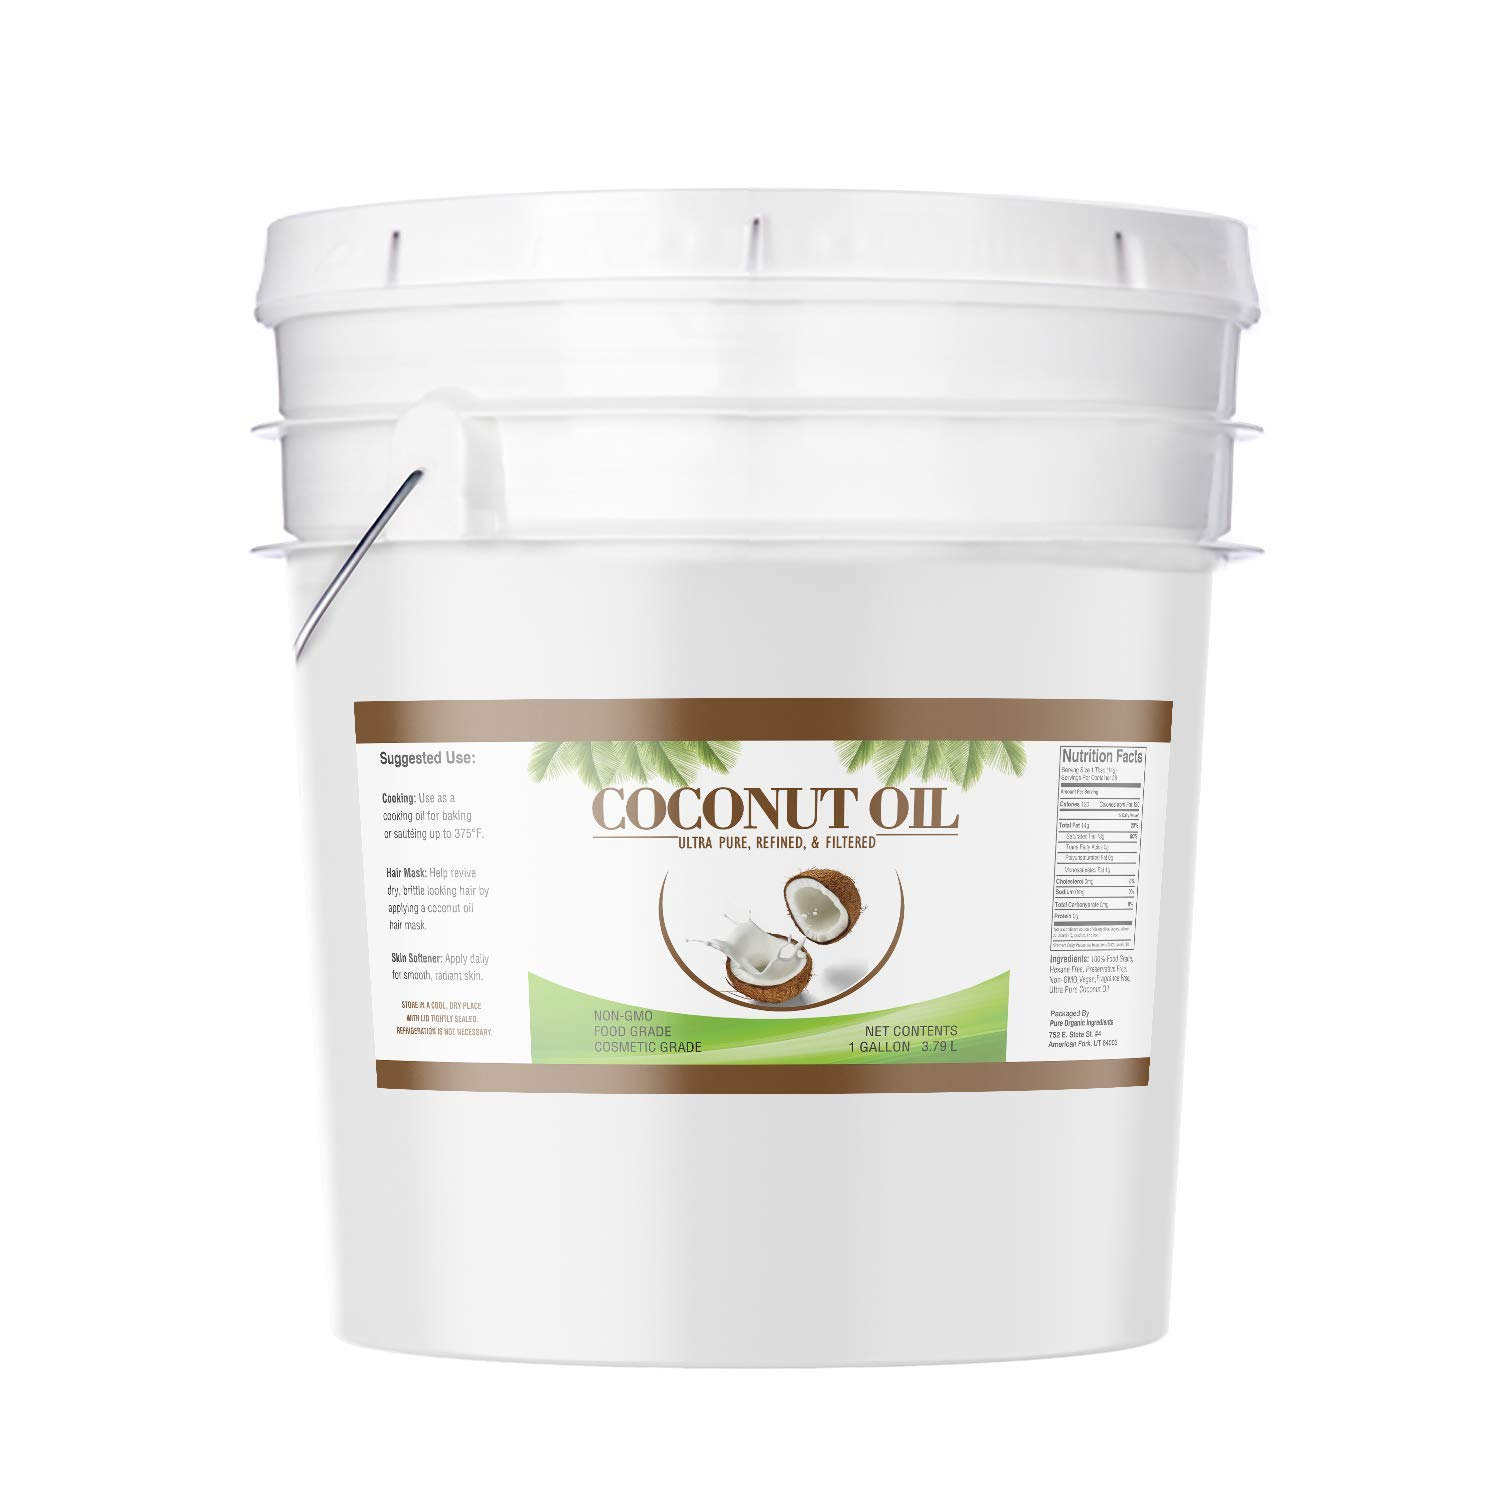 Coconut Oil (1 Gallon) by Pure Organic Ingredients, Ultra Pure, Refined, Filtered, Food Grade, Non-Hydrogenated, No Coconut Flavor or Scent, Non-GMO by Pure Organic Ingredients